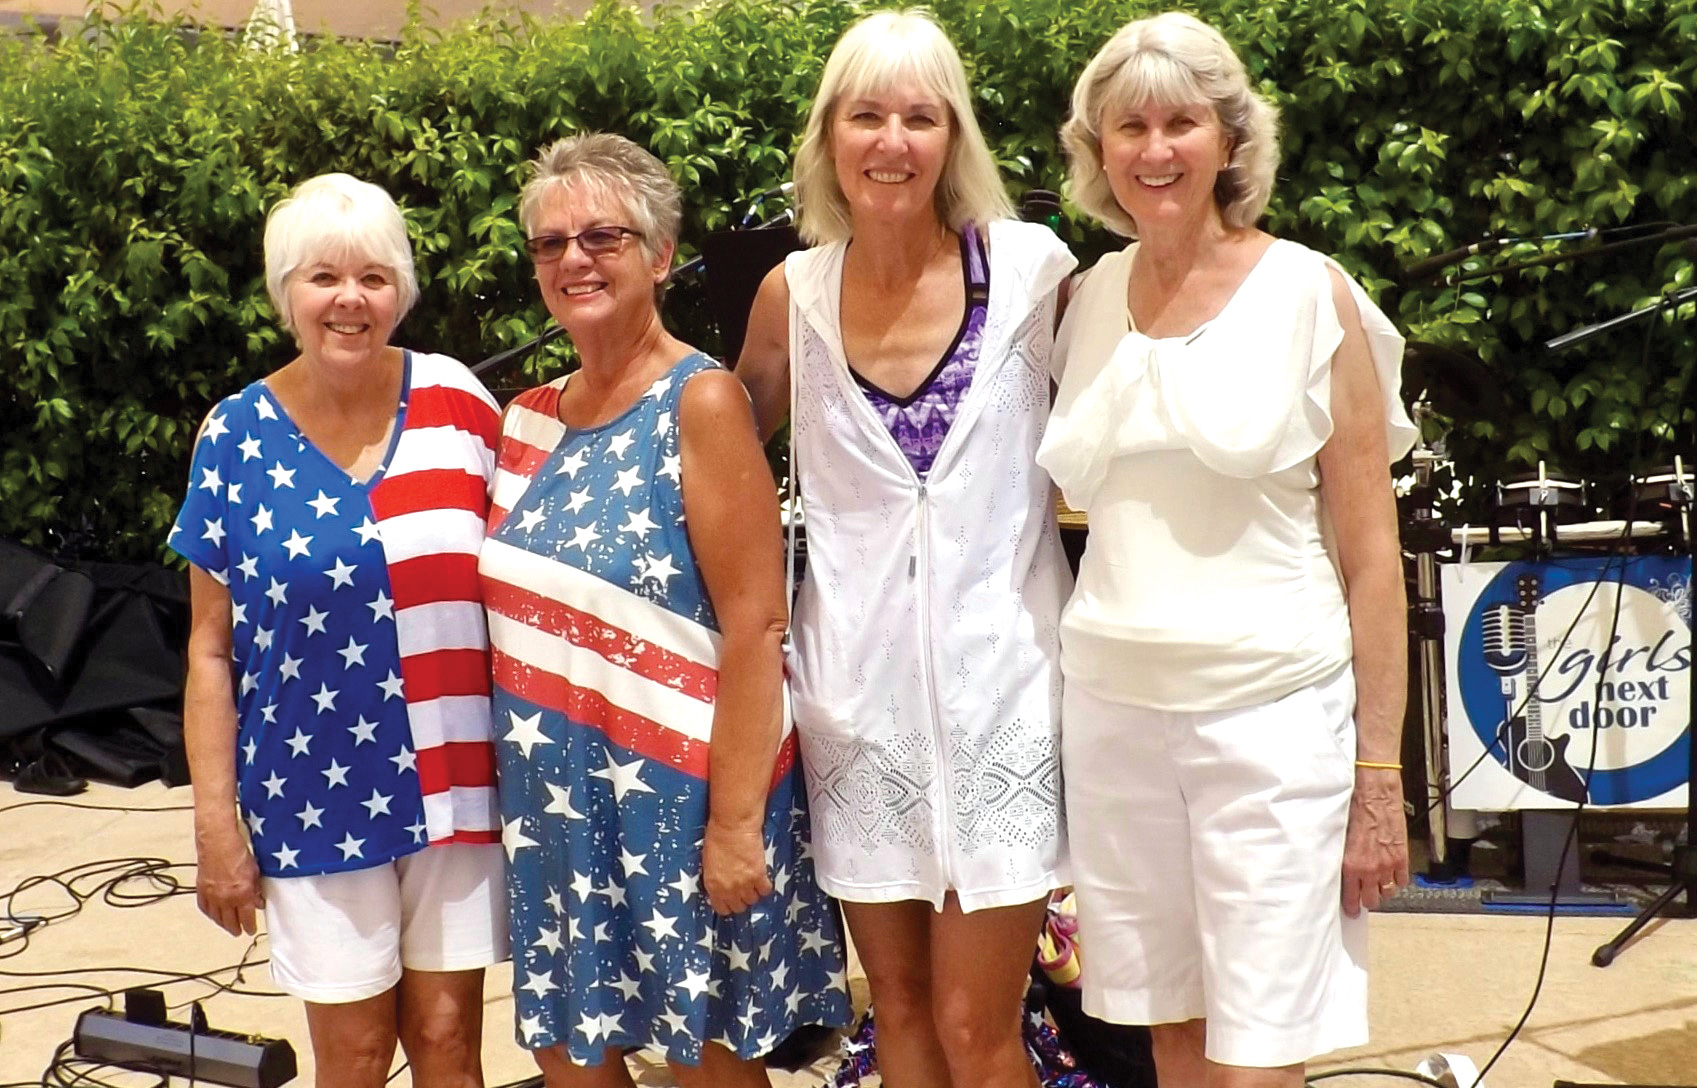 Band members (left to right): Gerri Bradley, Connie Drew, Lisa Hunt, and Connie Koza